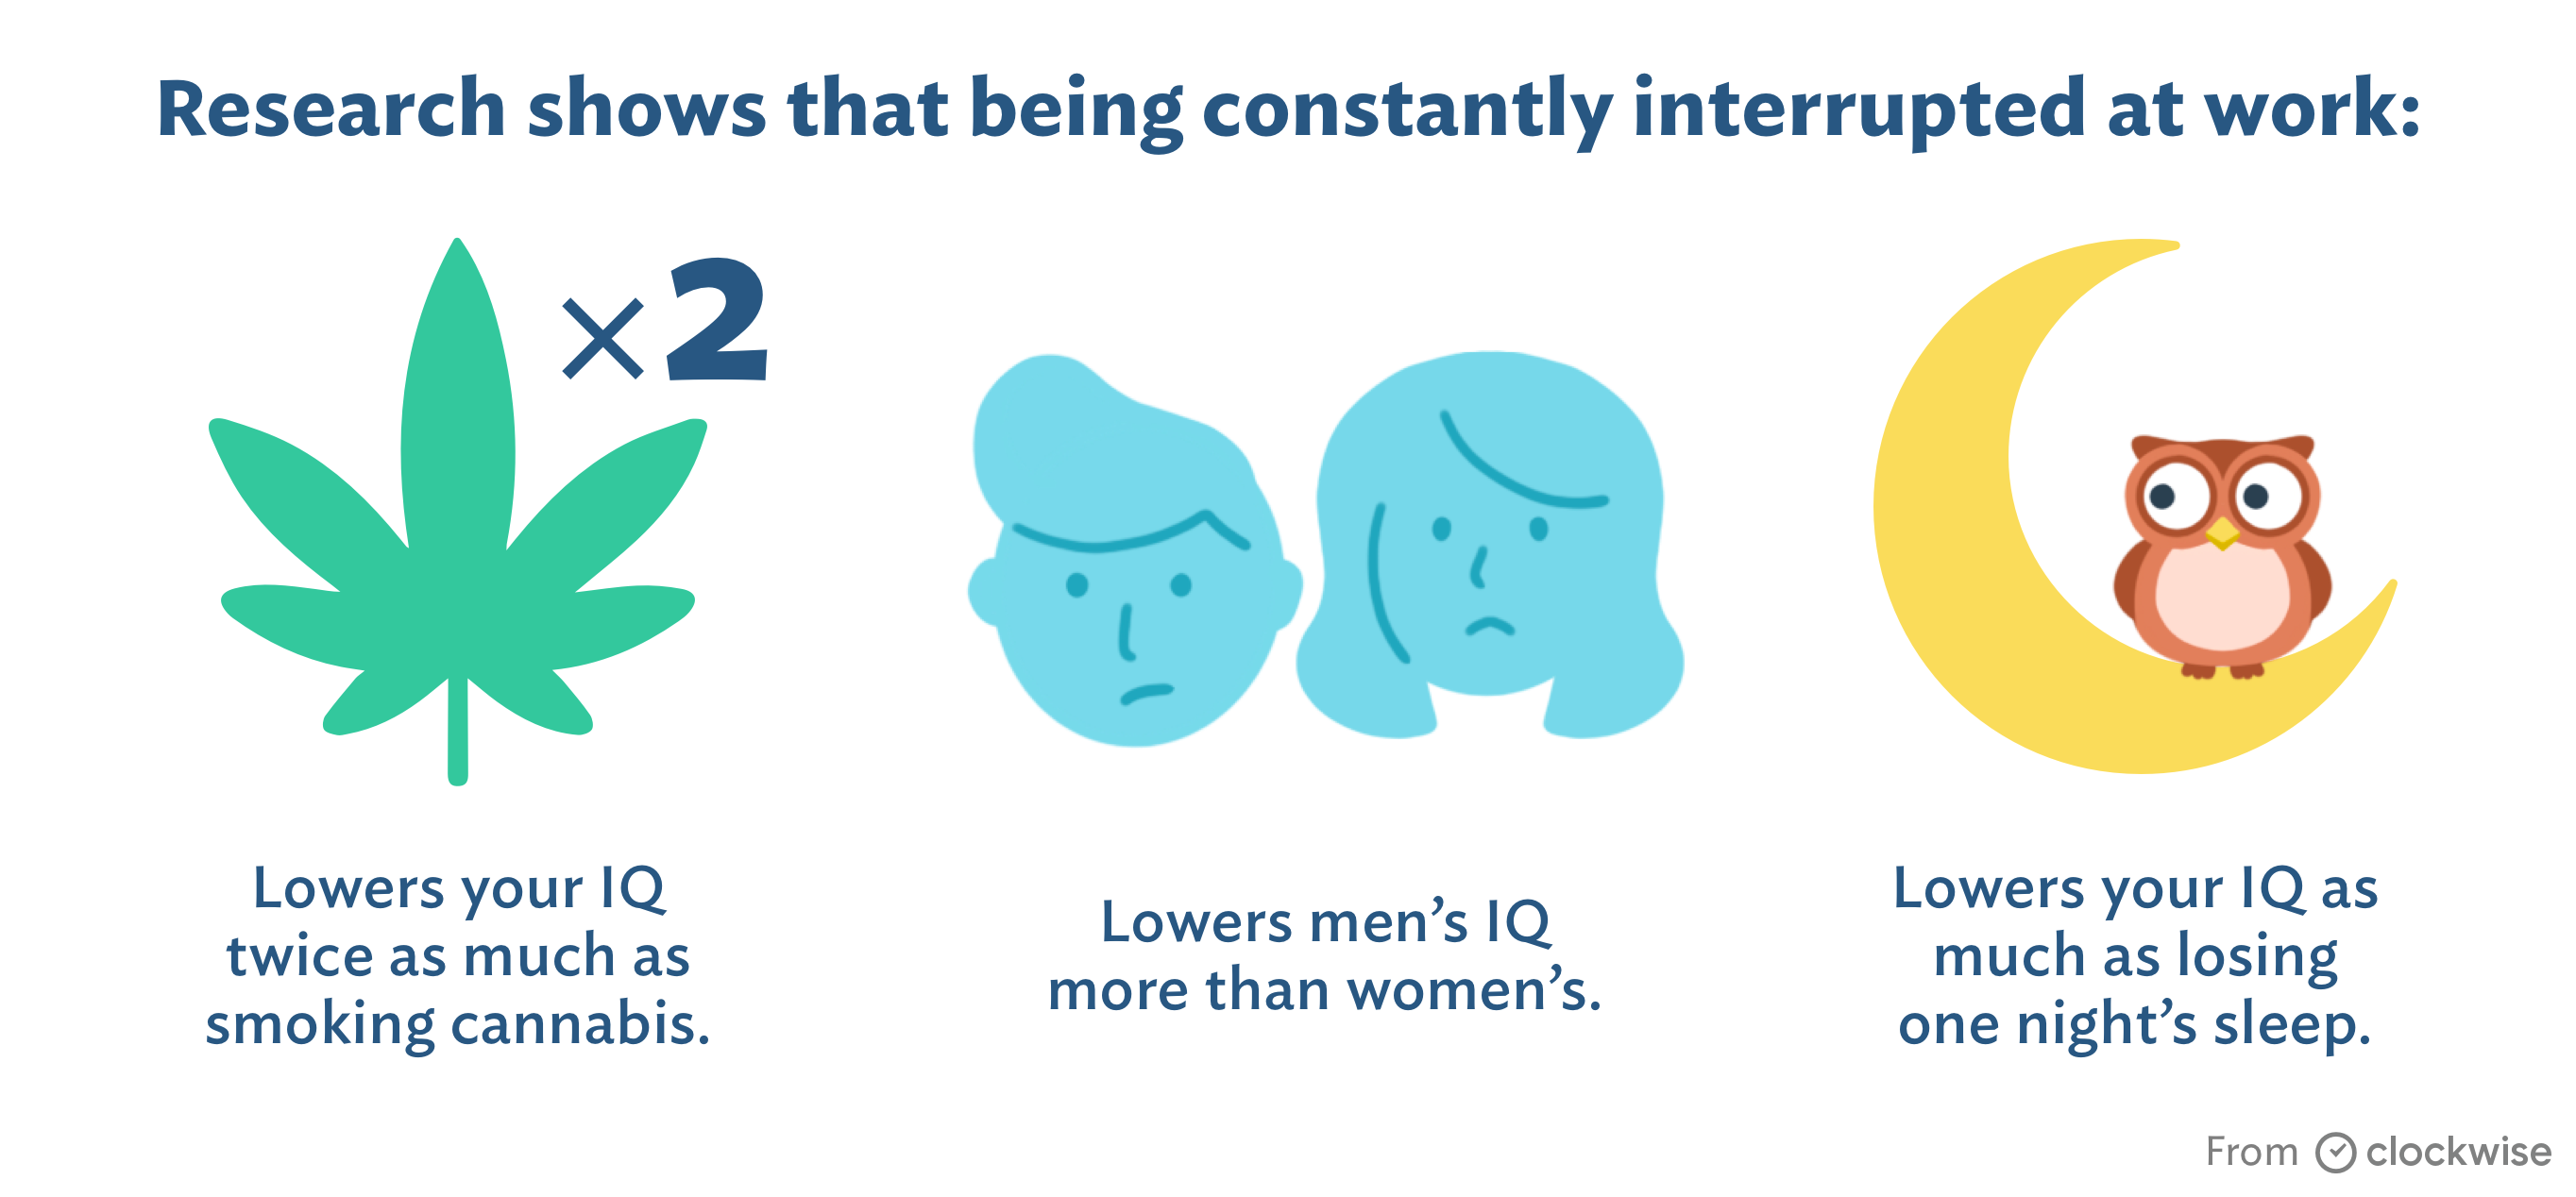 How interruptions at work impact performance